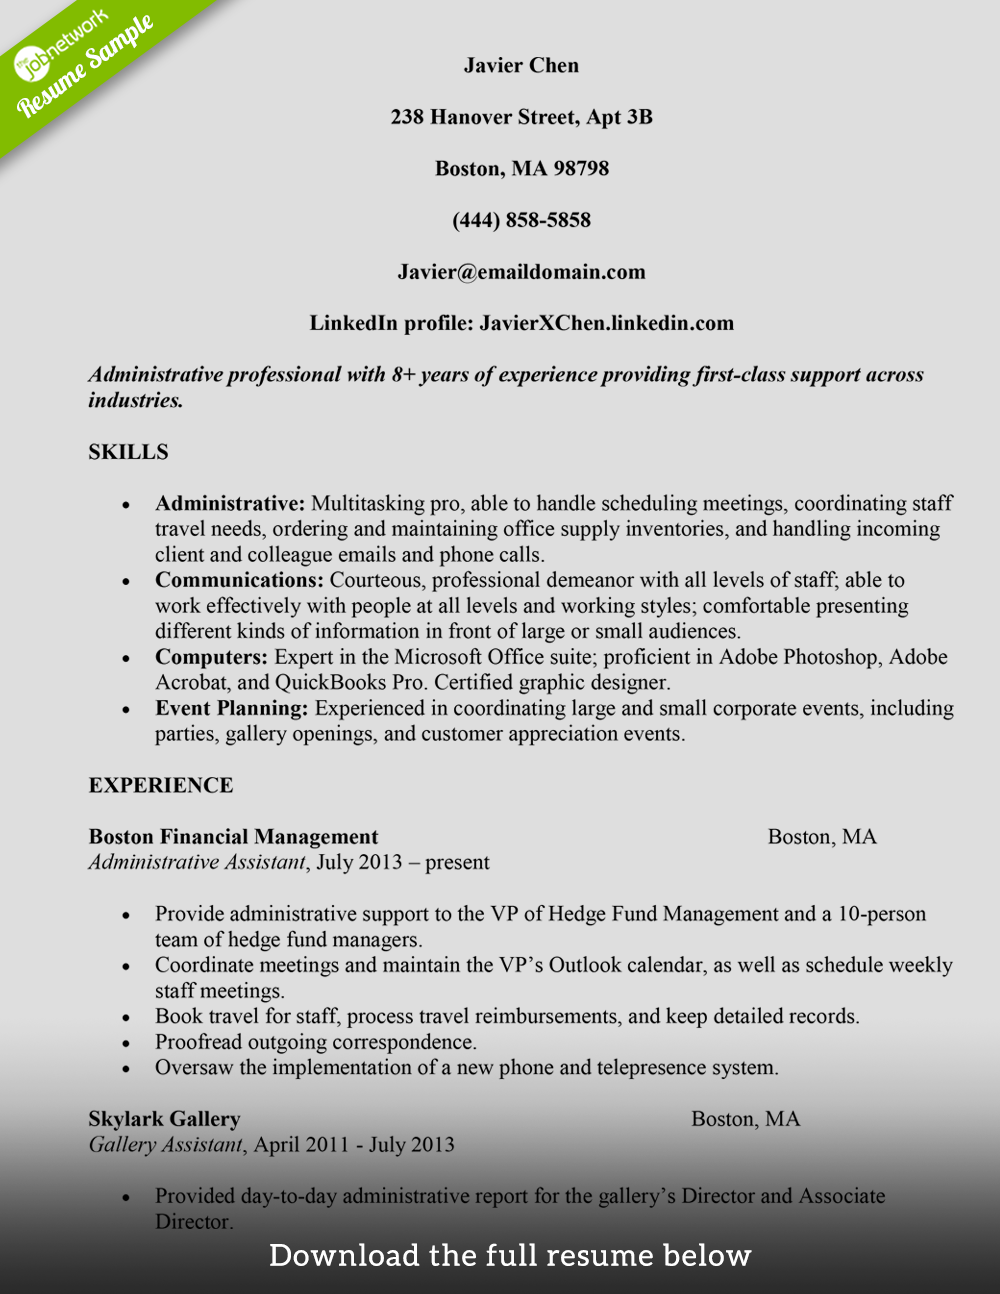 administrative assistant resume javier chen - Perfect Professional Resume